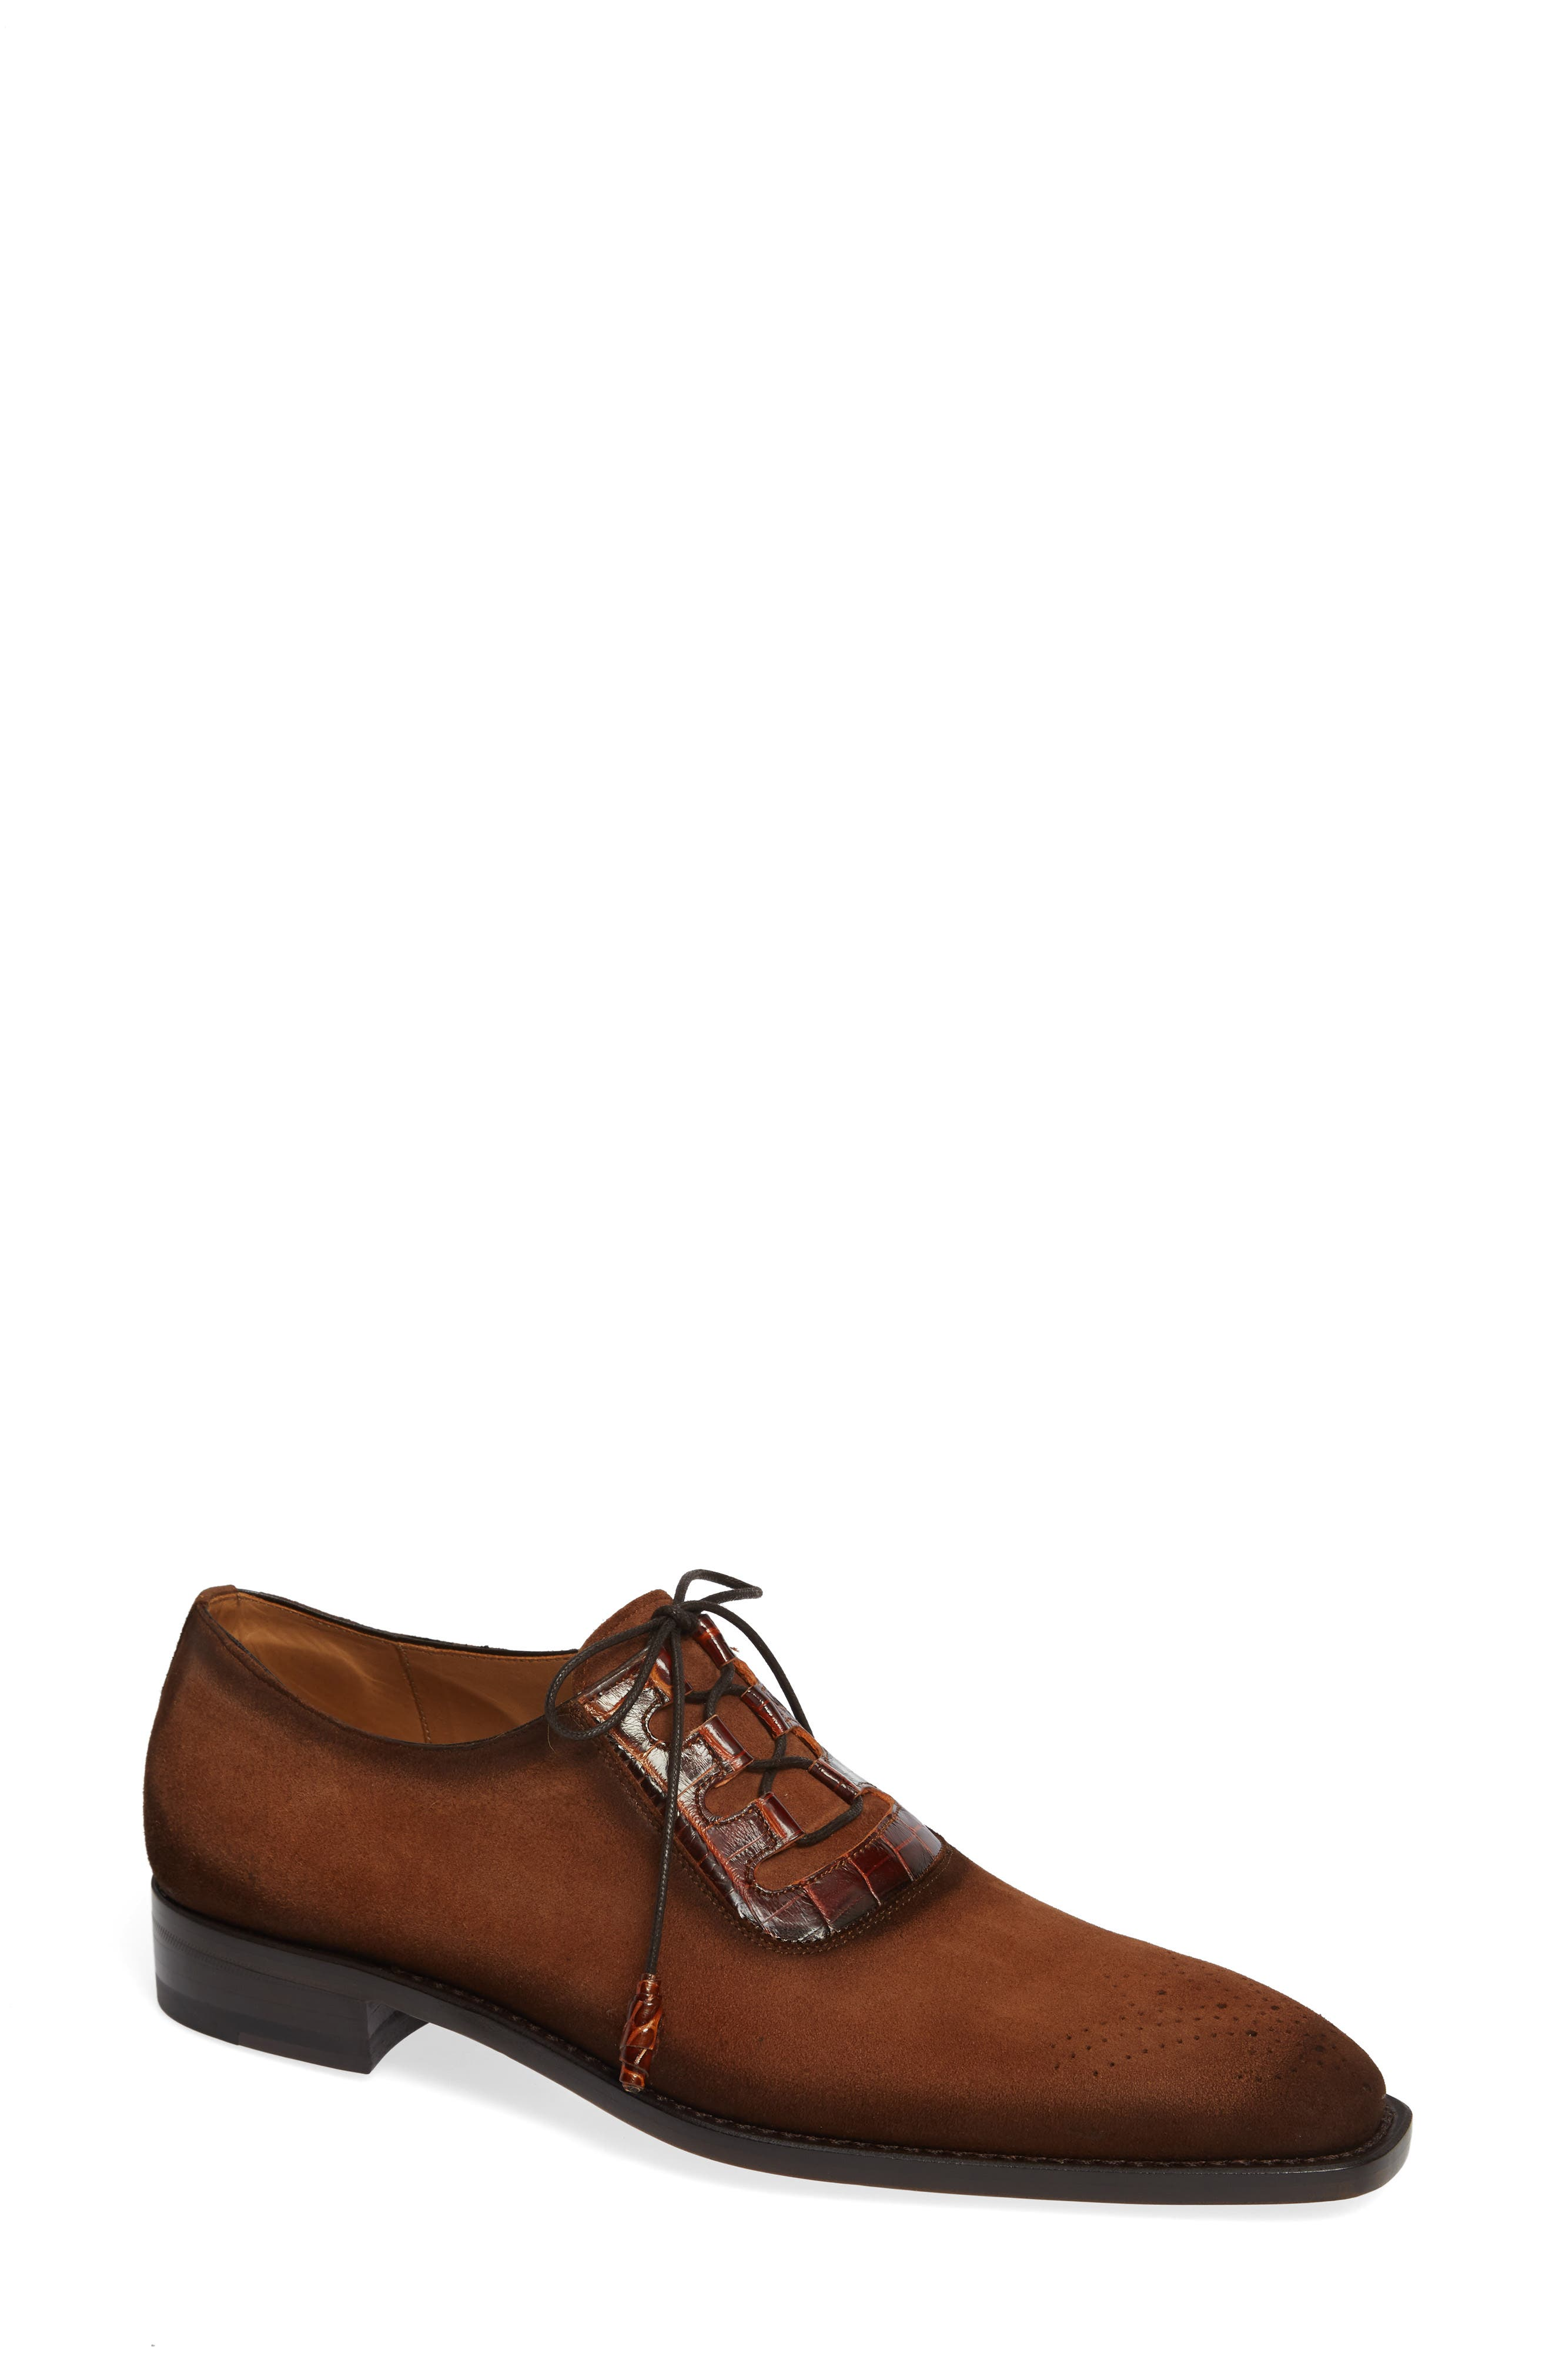 Cassel Oxford,                         Main,                         color, COGNAC